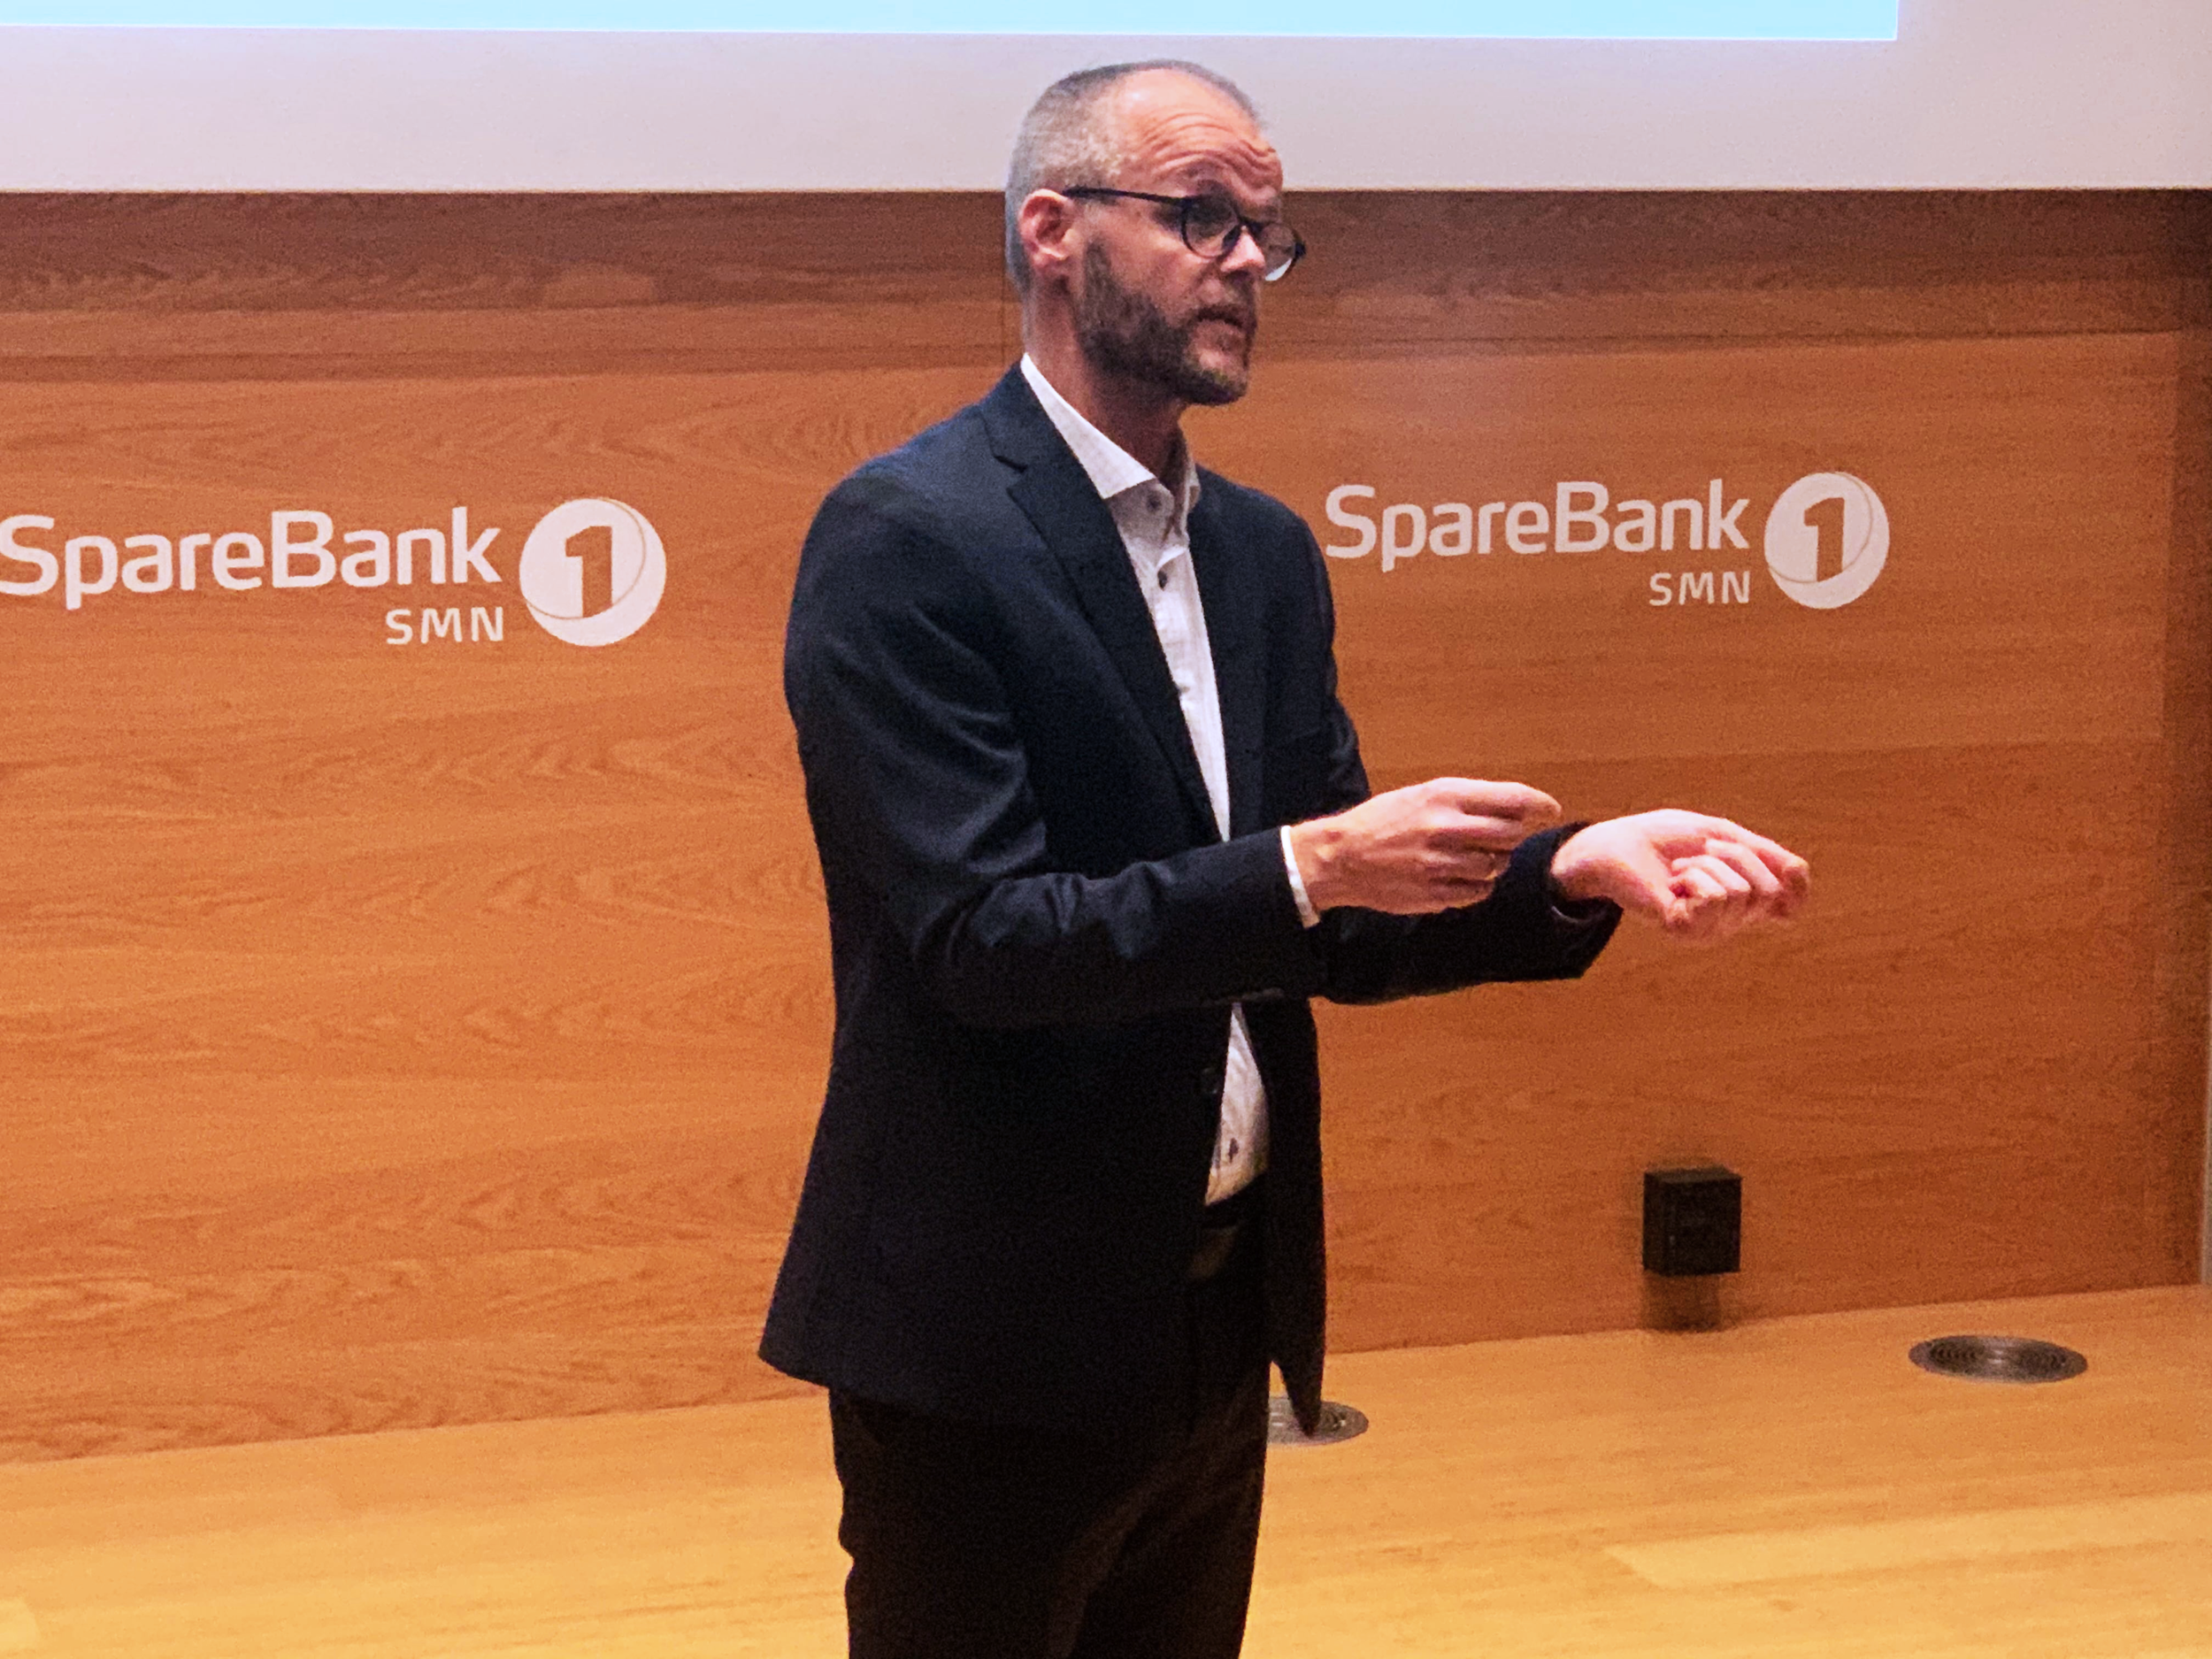 Knut Haugan speaking about the regulatory sandbox in SpareBank1 SMN's headquarters in Trondheim. Photo: Håkon Lavik